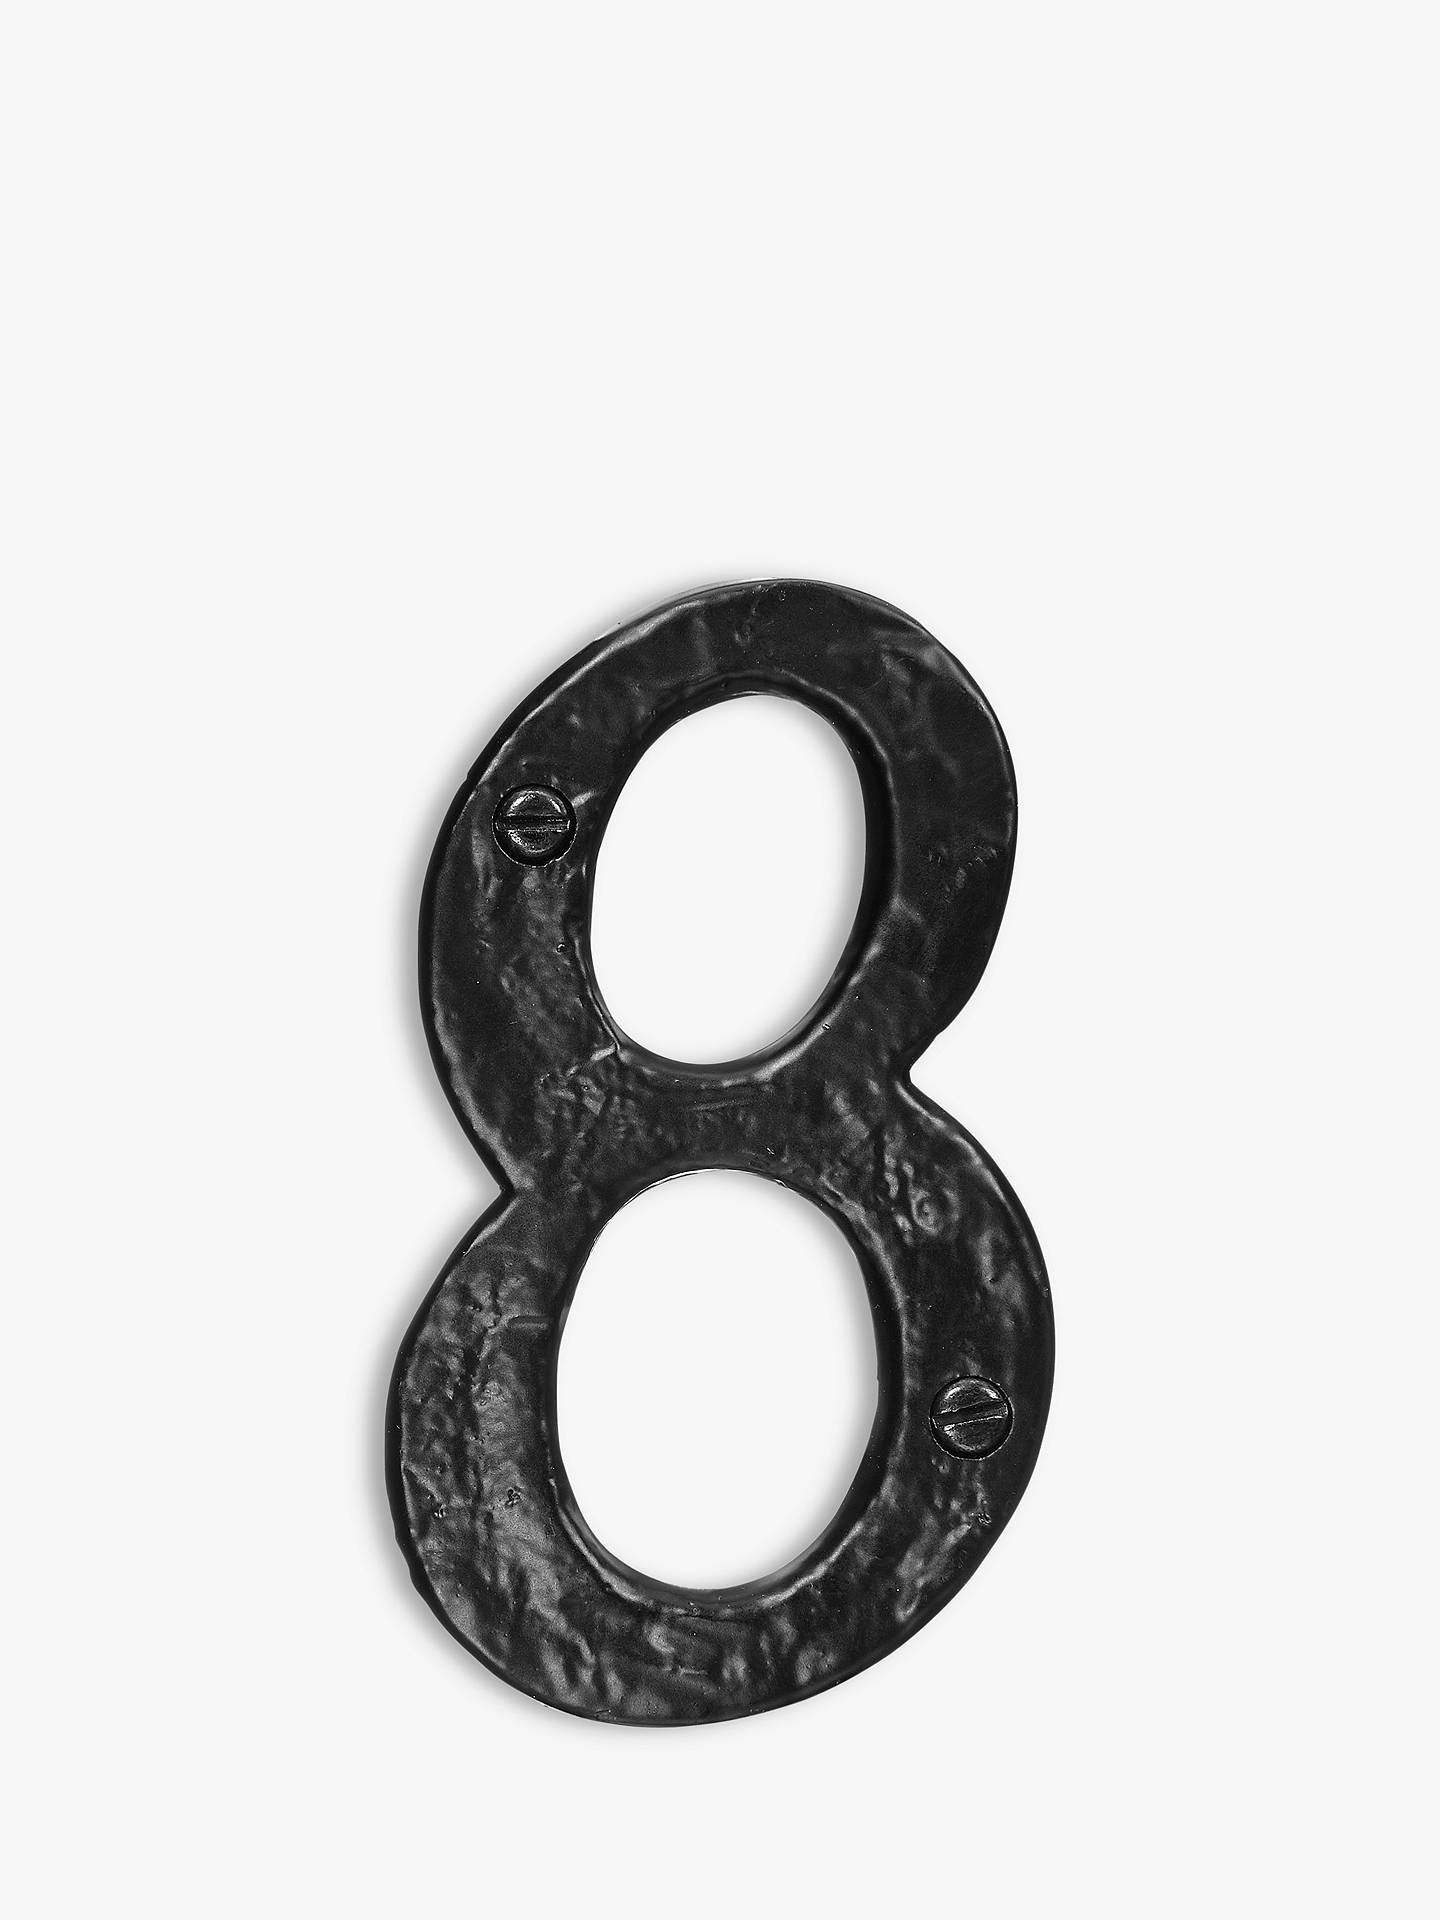 BuyJohn Lewis & Partners Wrought Iron Door 8 Numeral, Black Online at johnlewis.com